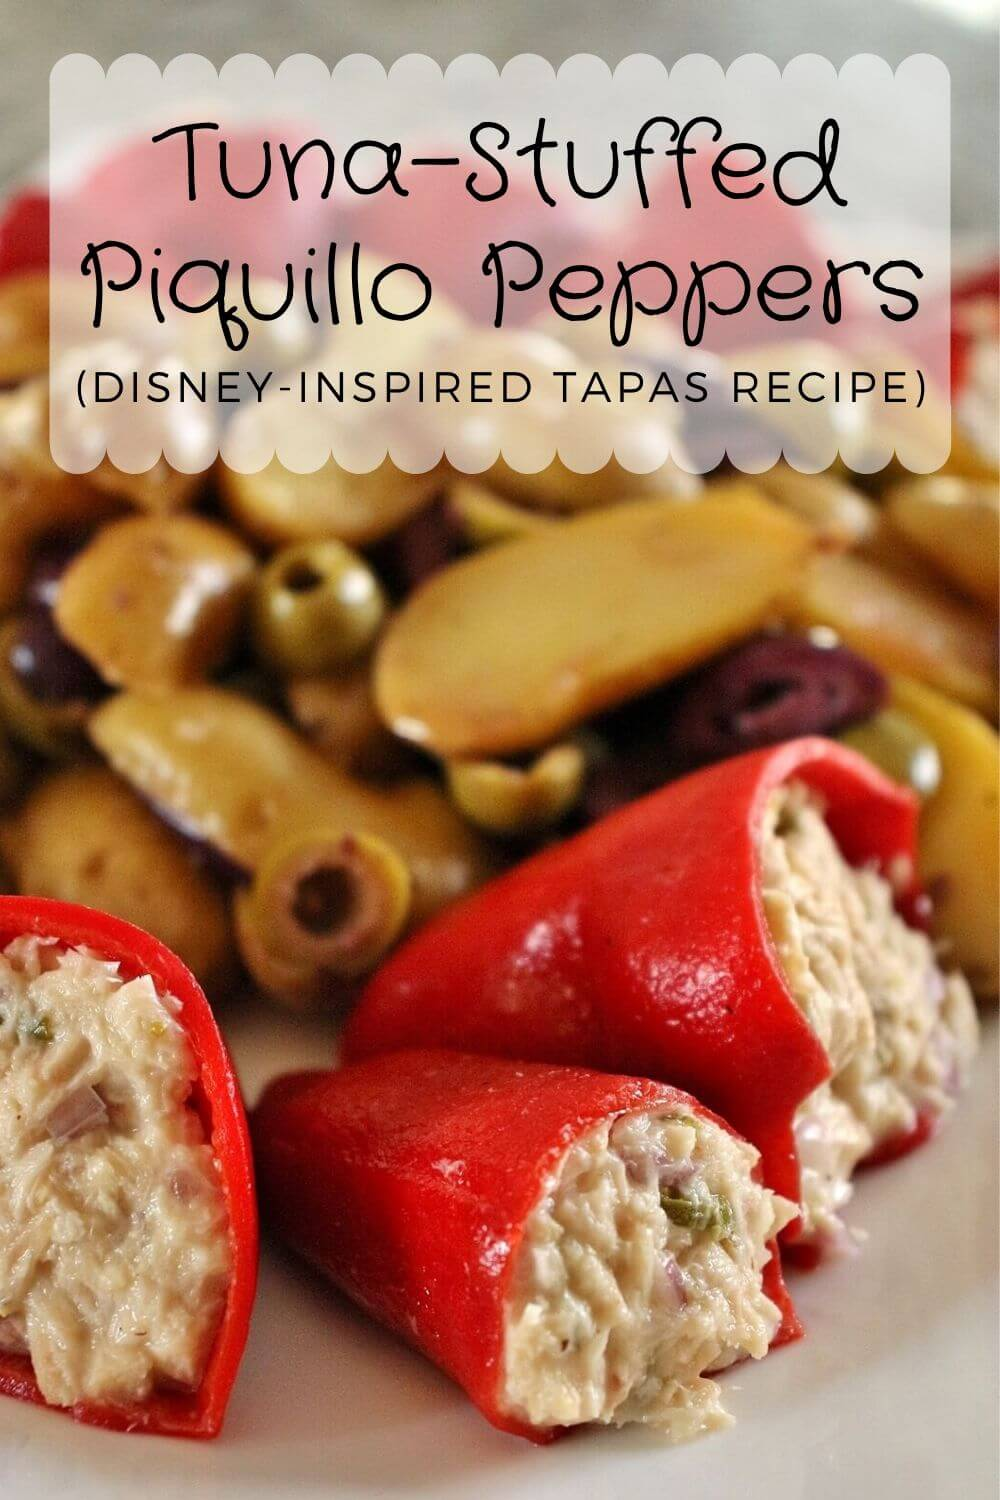 A platter of tuna-stuffed piquillo peppers